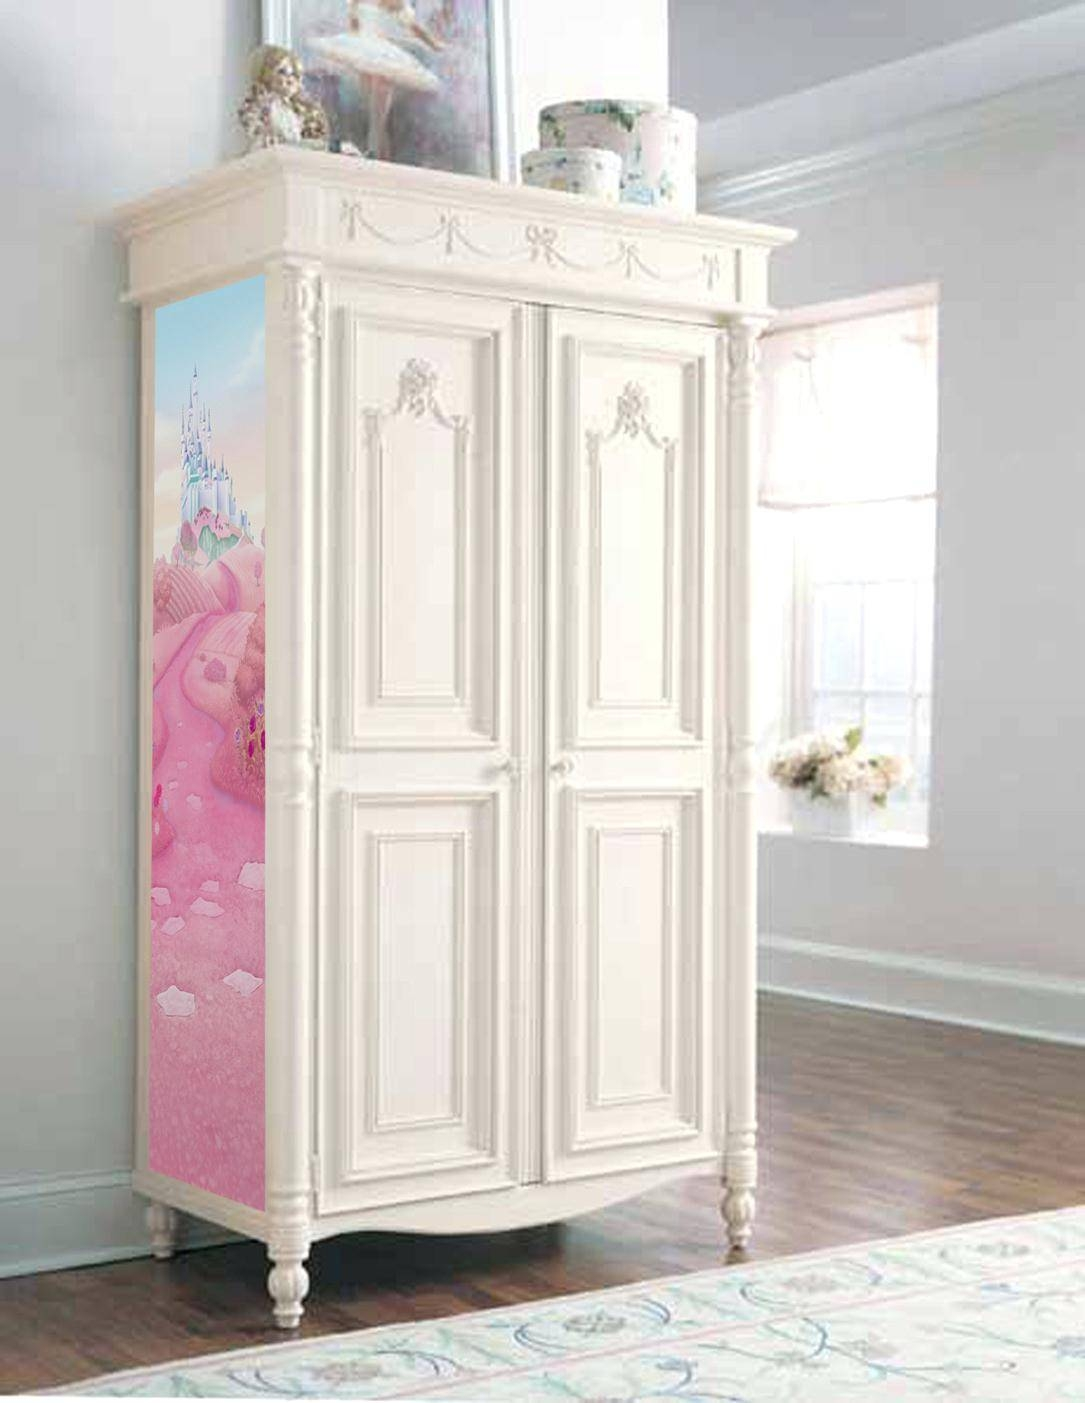 Wardrobe Or Armoire Disney Princess Musical Jewelry 30 Inches Wide throughout The Princess Wardrobes (Image 15 of 15)